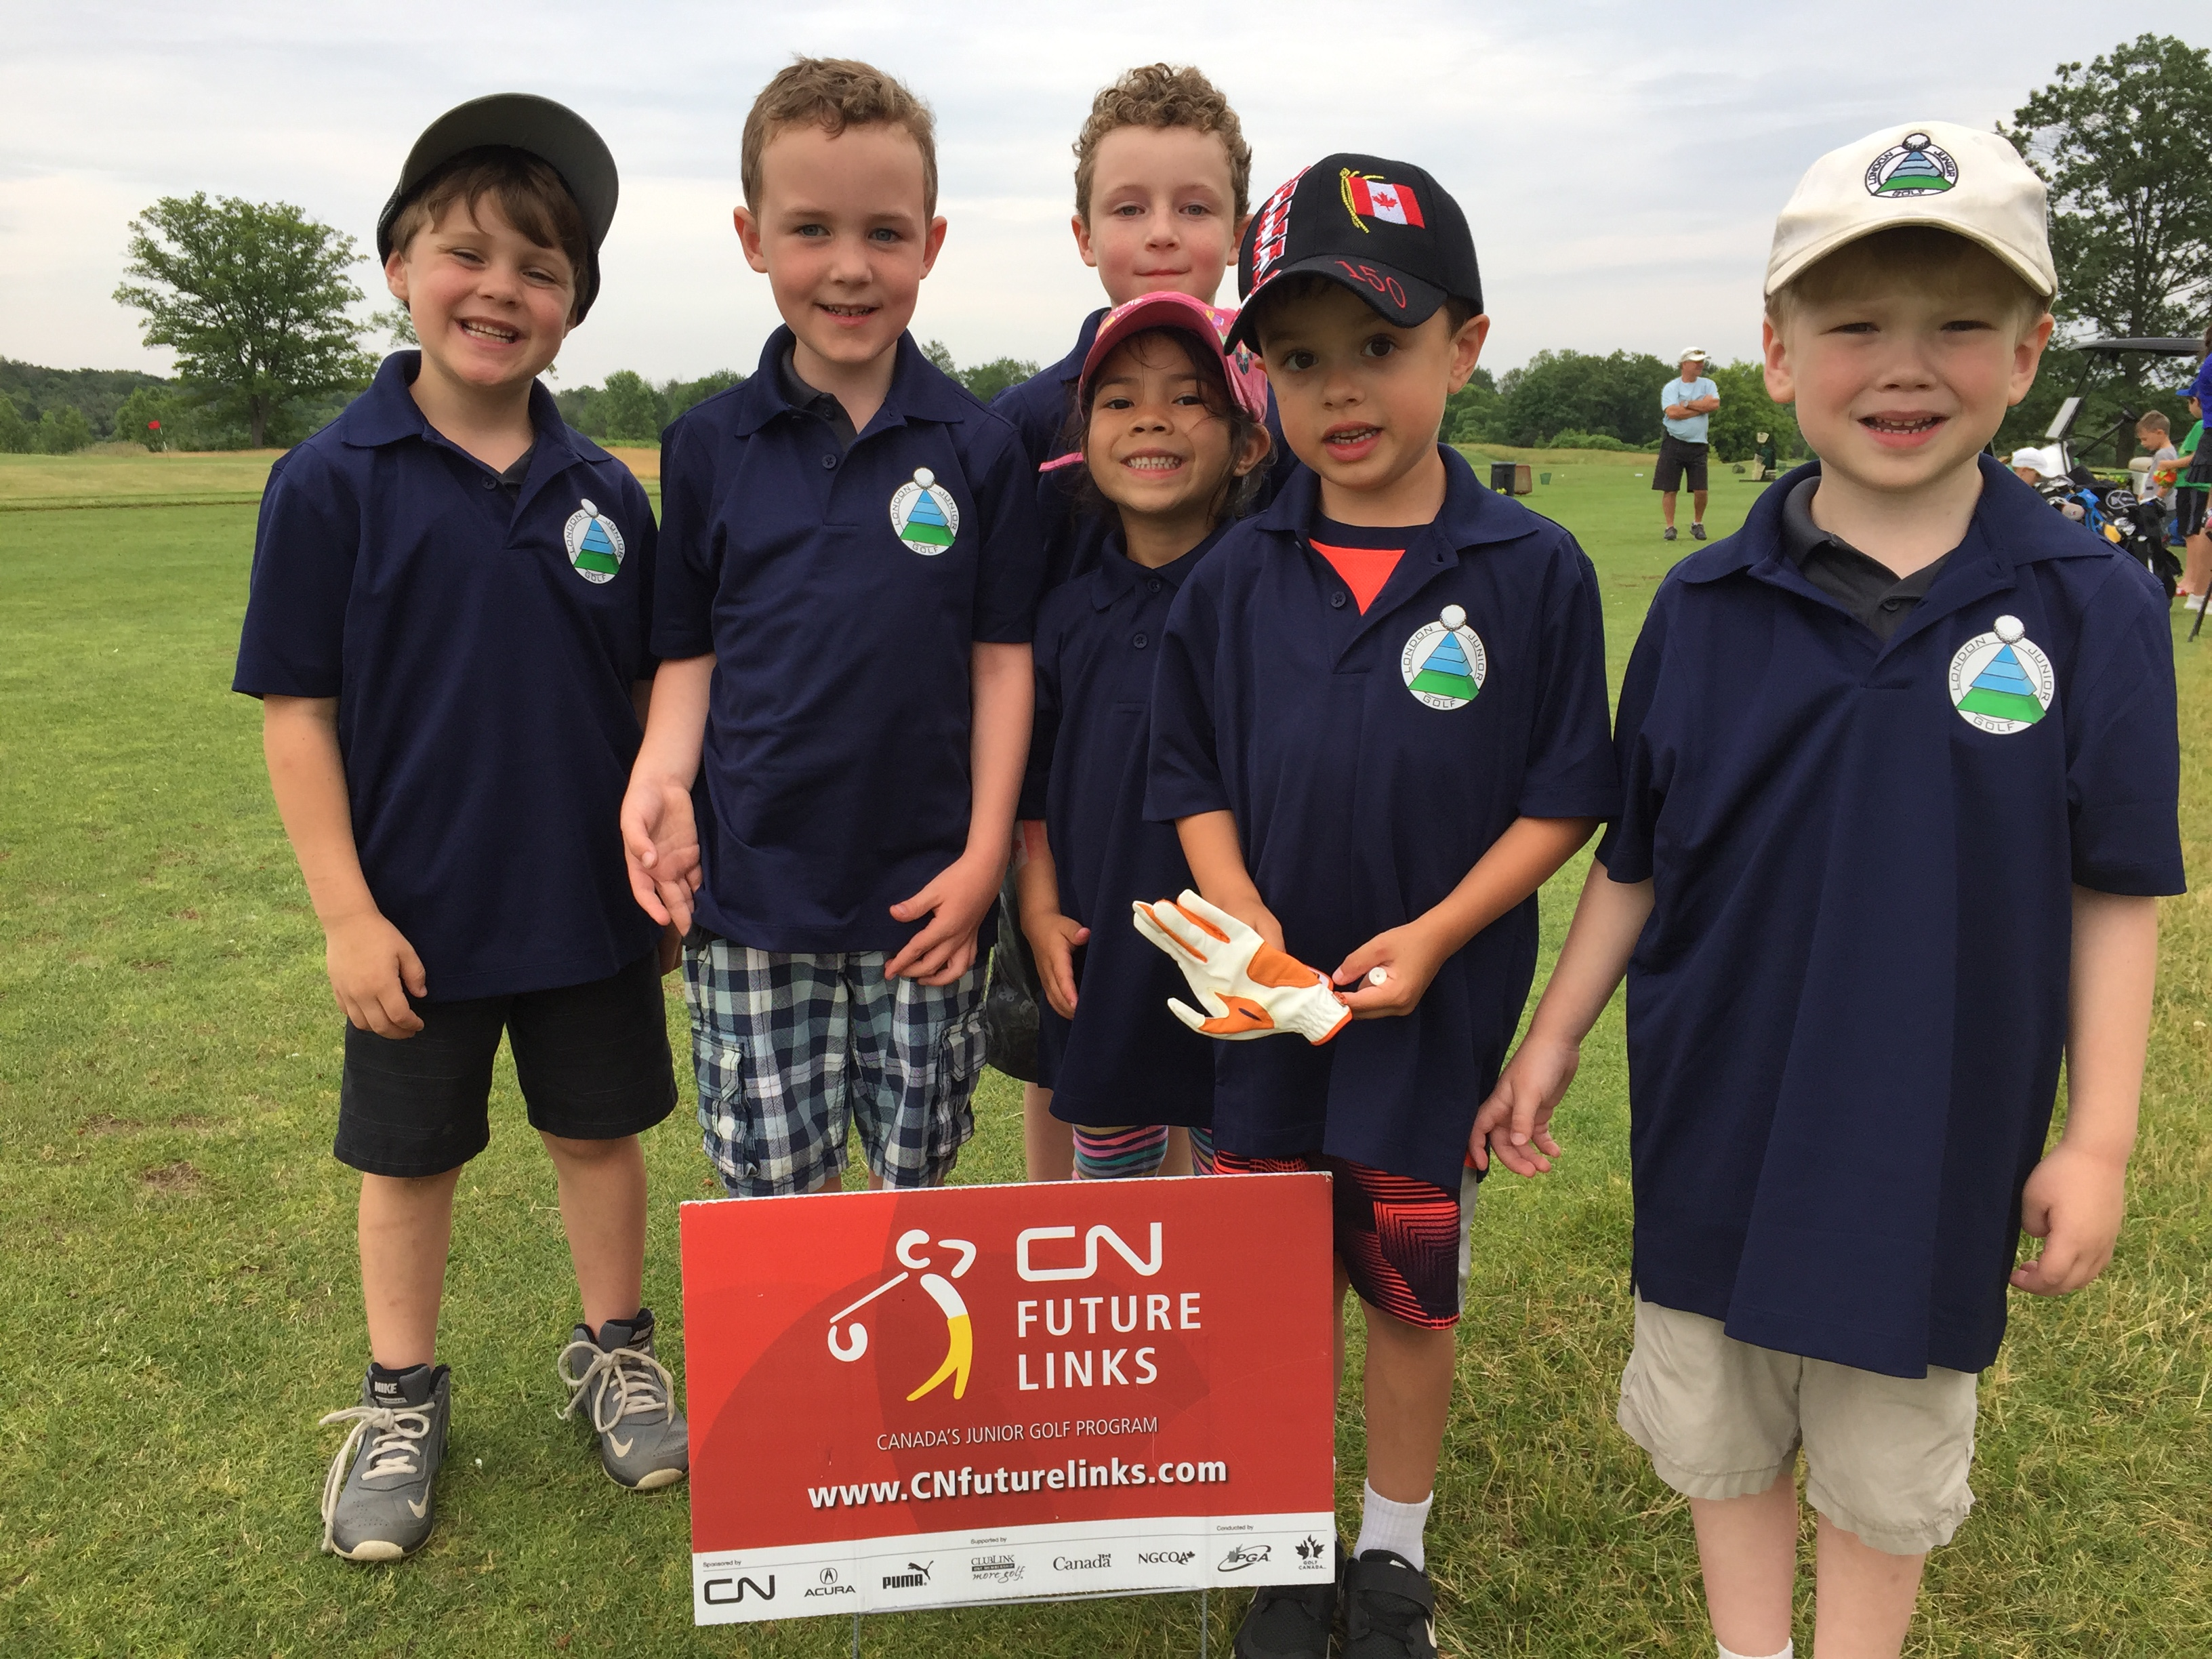 Golf for kids Ages 6 and Under in London, Ontario